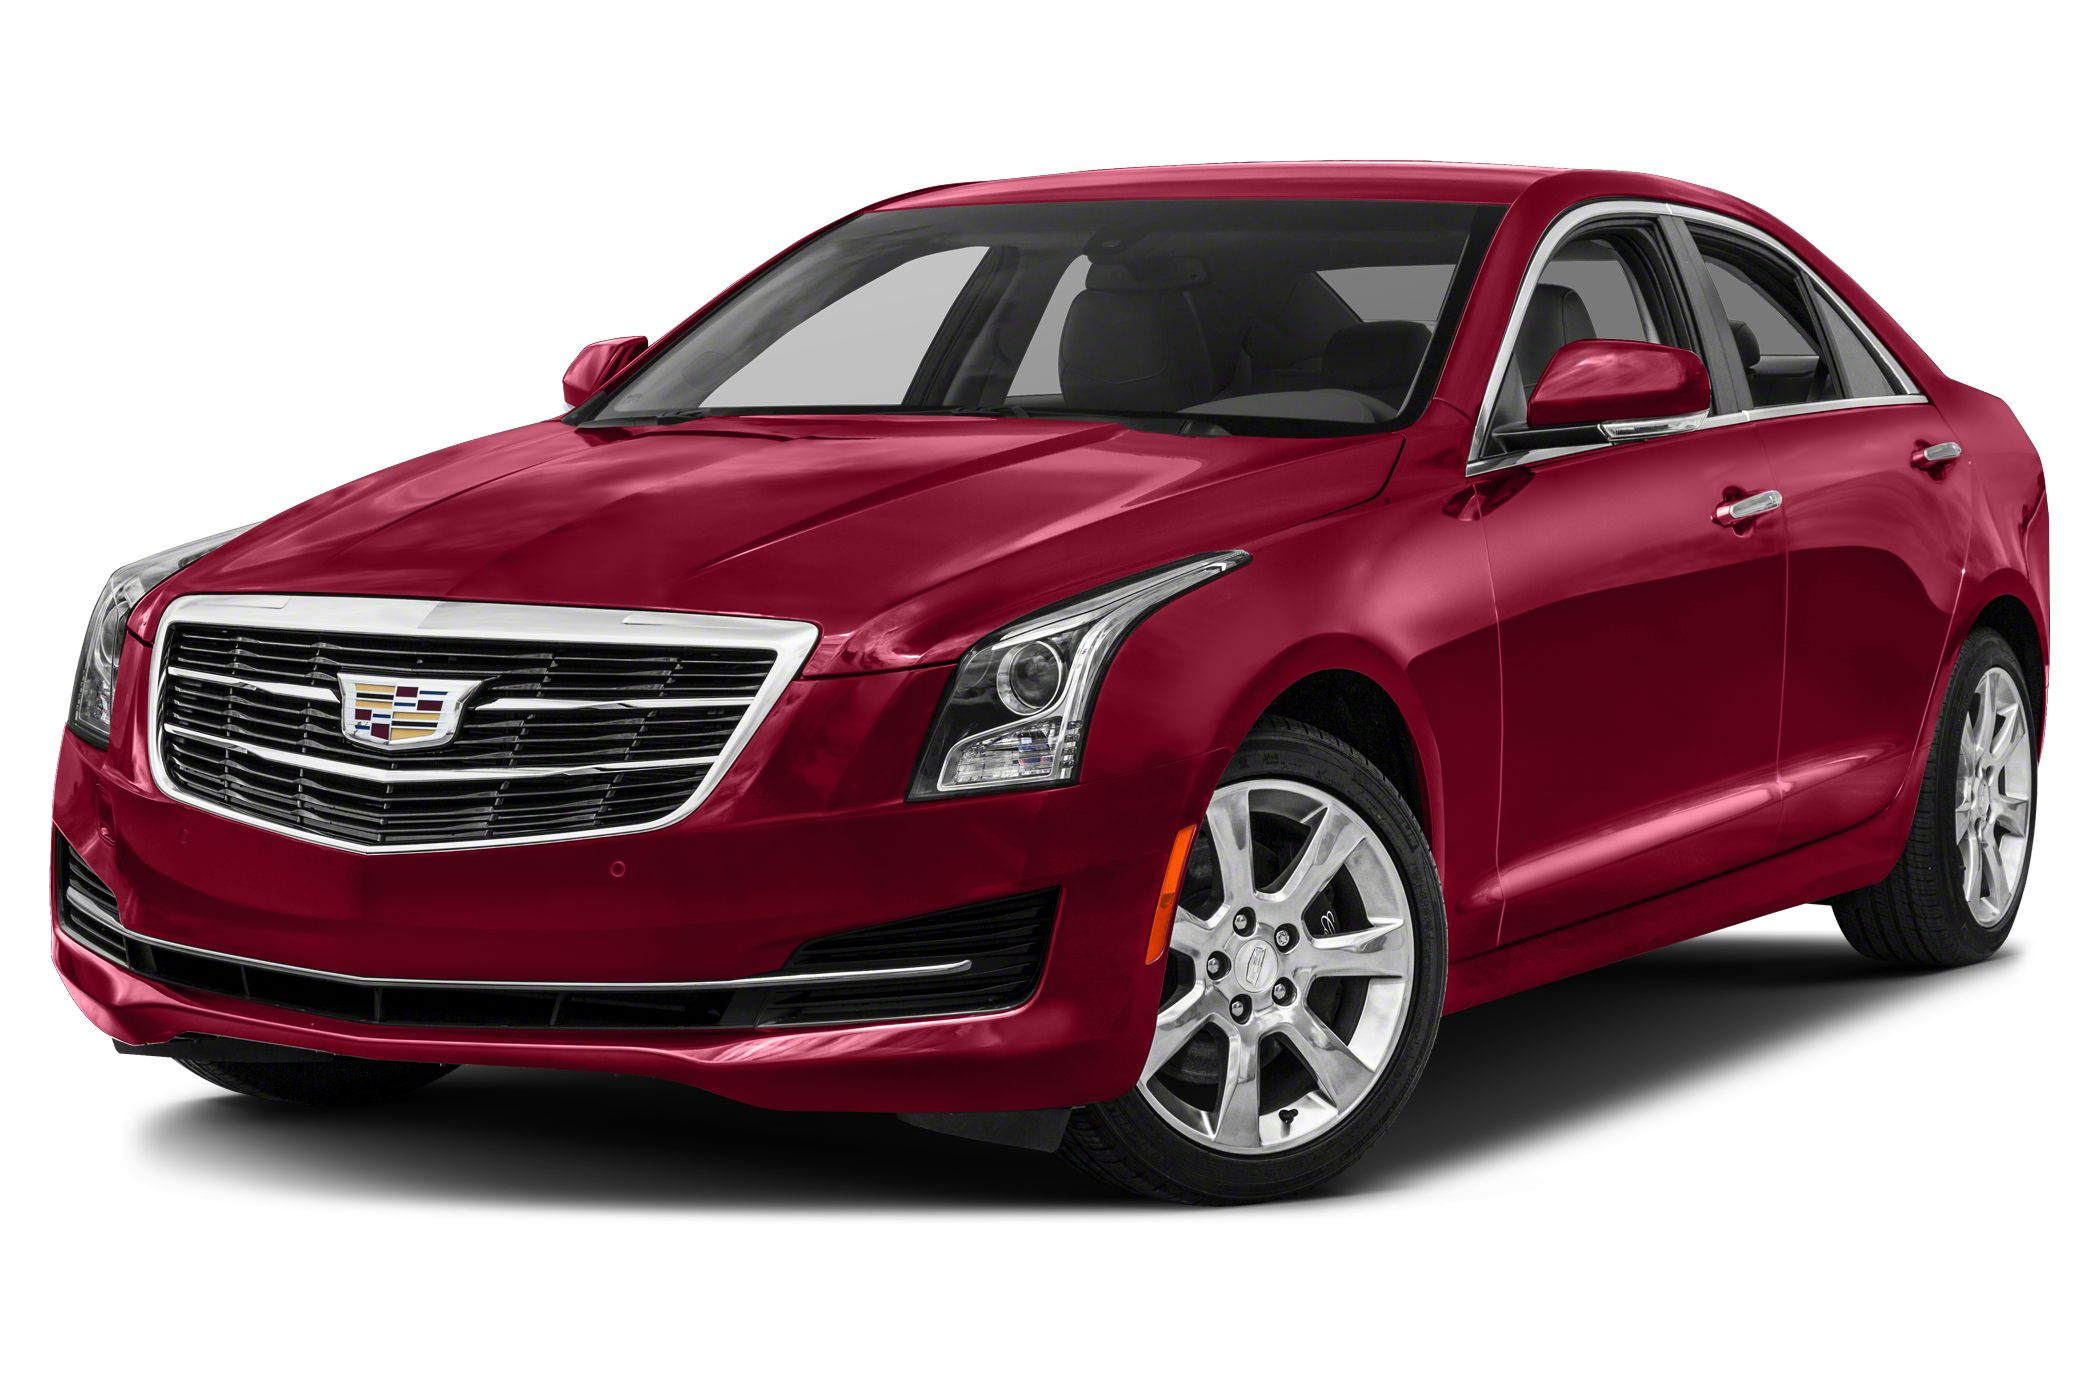 2015 Cadillac ATS 2.5L Luxury Sedan for sale in Bradenton for $38,335 with 0 miles.